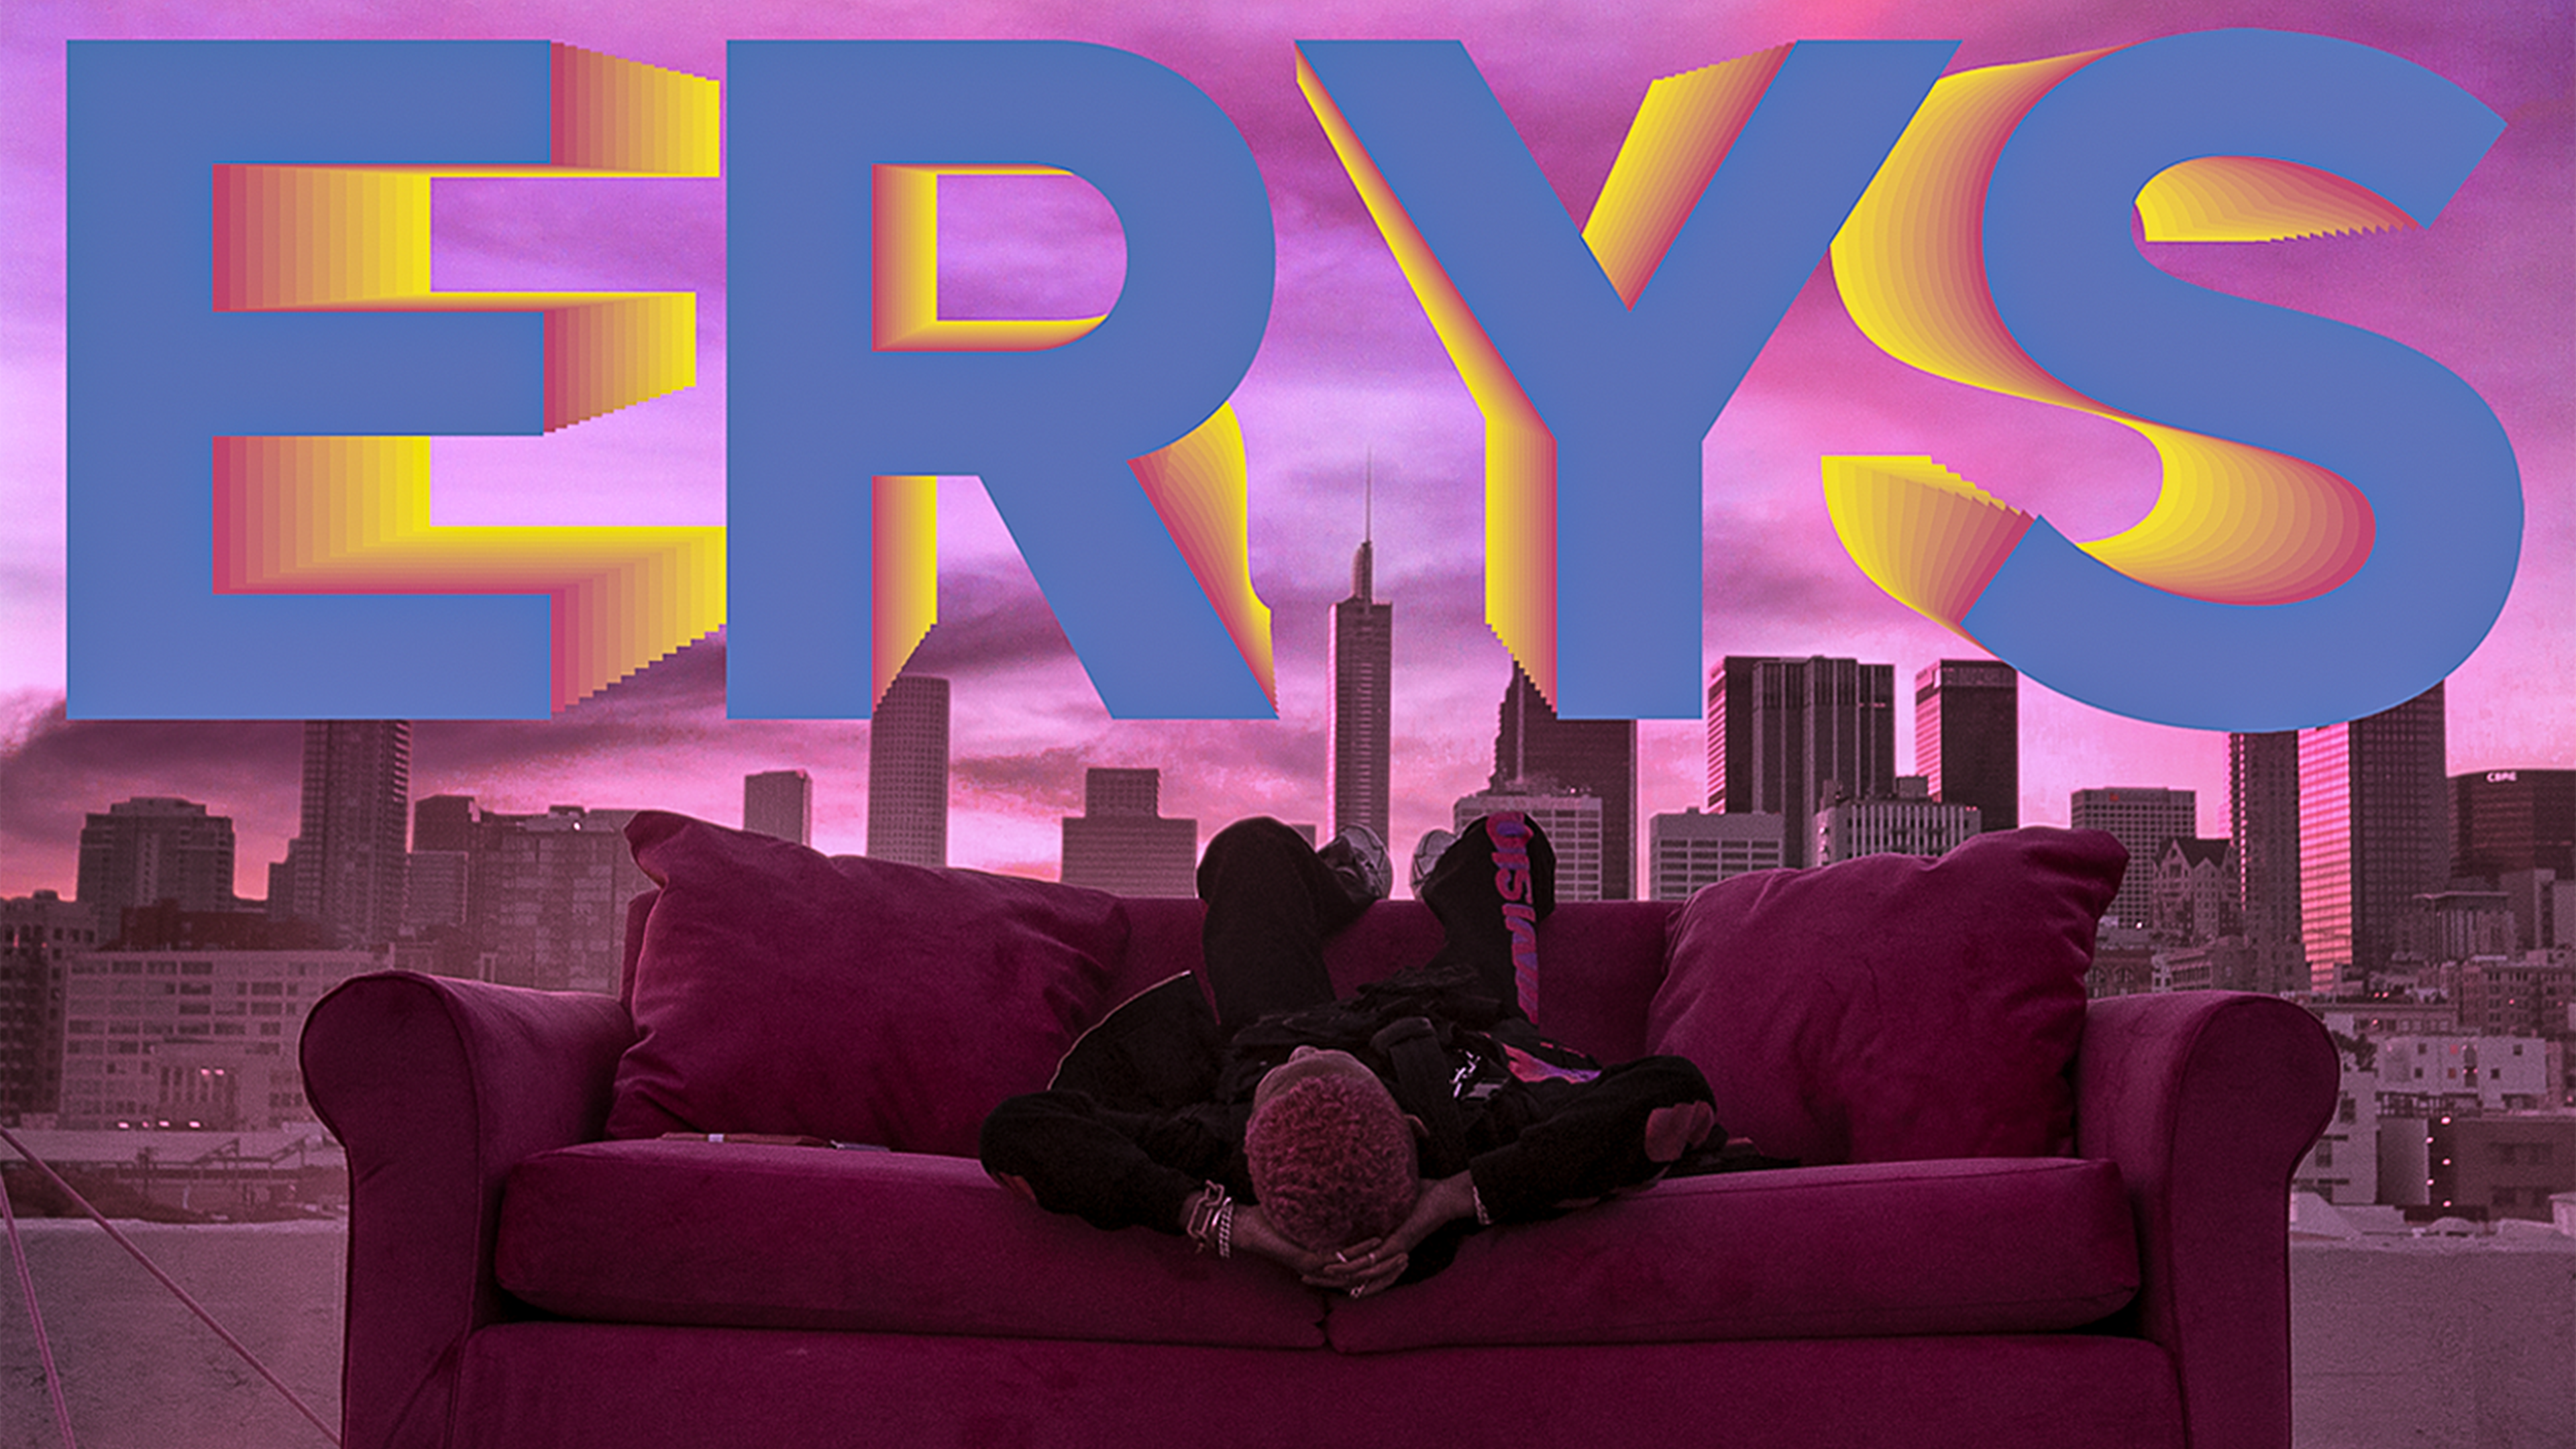 ERYS wallpaper for computer 3840 x 2160 JadenSmith 3840x2160